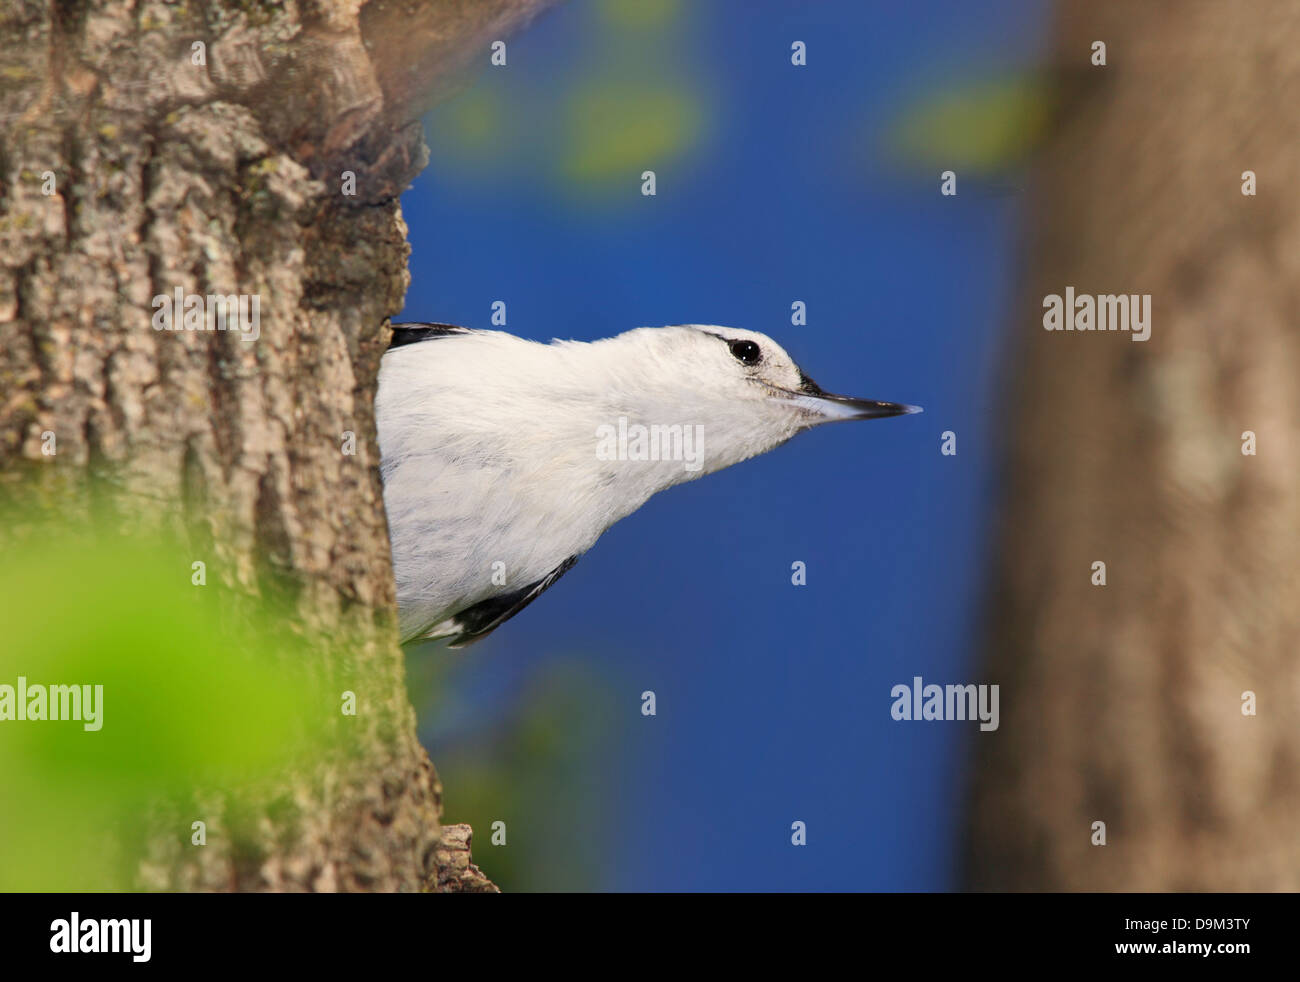 A Very Cute And Tiny Bird Stretching It's Neck High Up In A Tree, The White Breasted Nuthatch, Sitta carolinensis - Stock Image